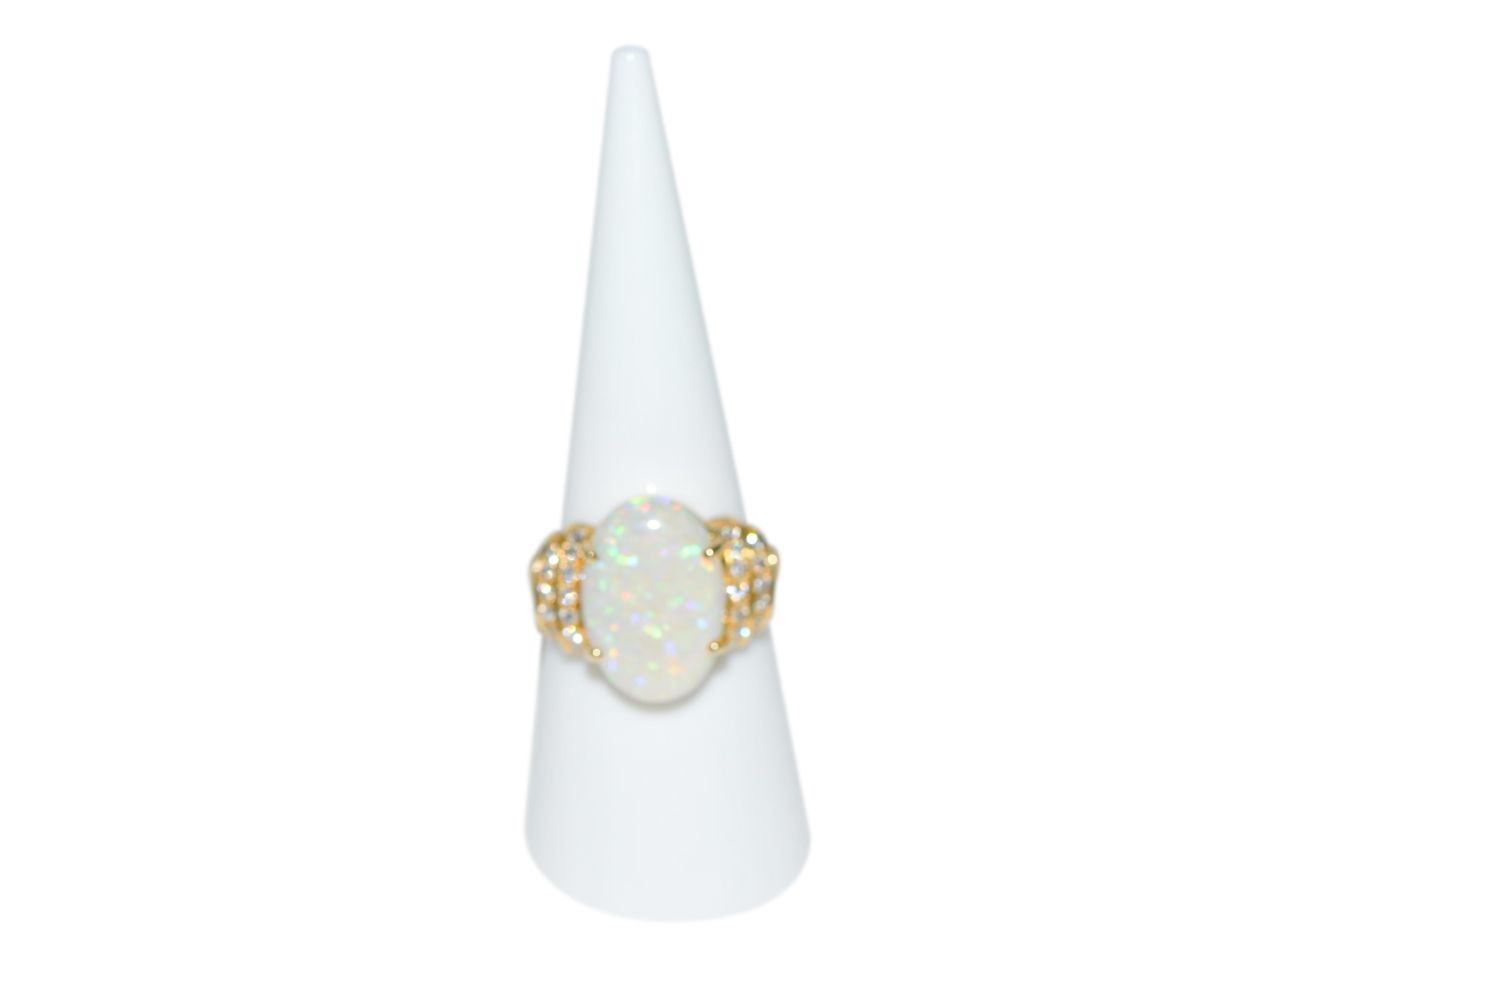 #90 Brilliant ring with opal | Brillantring mit Opal Image